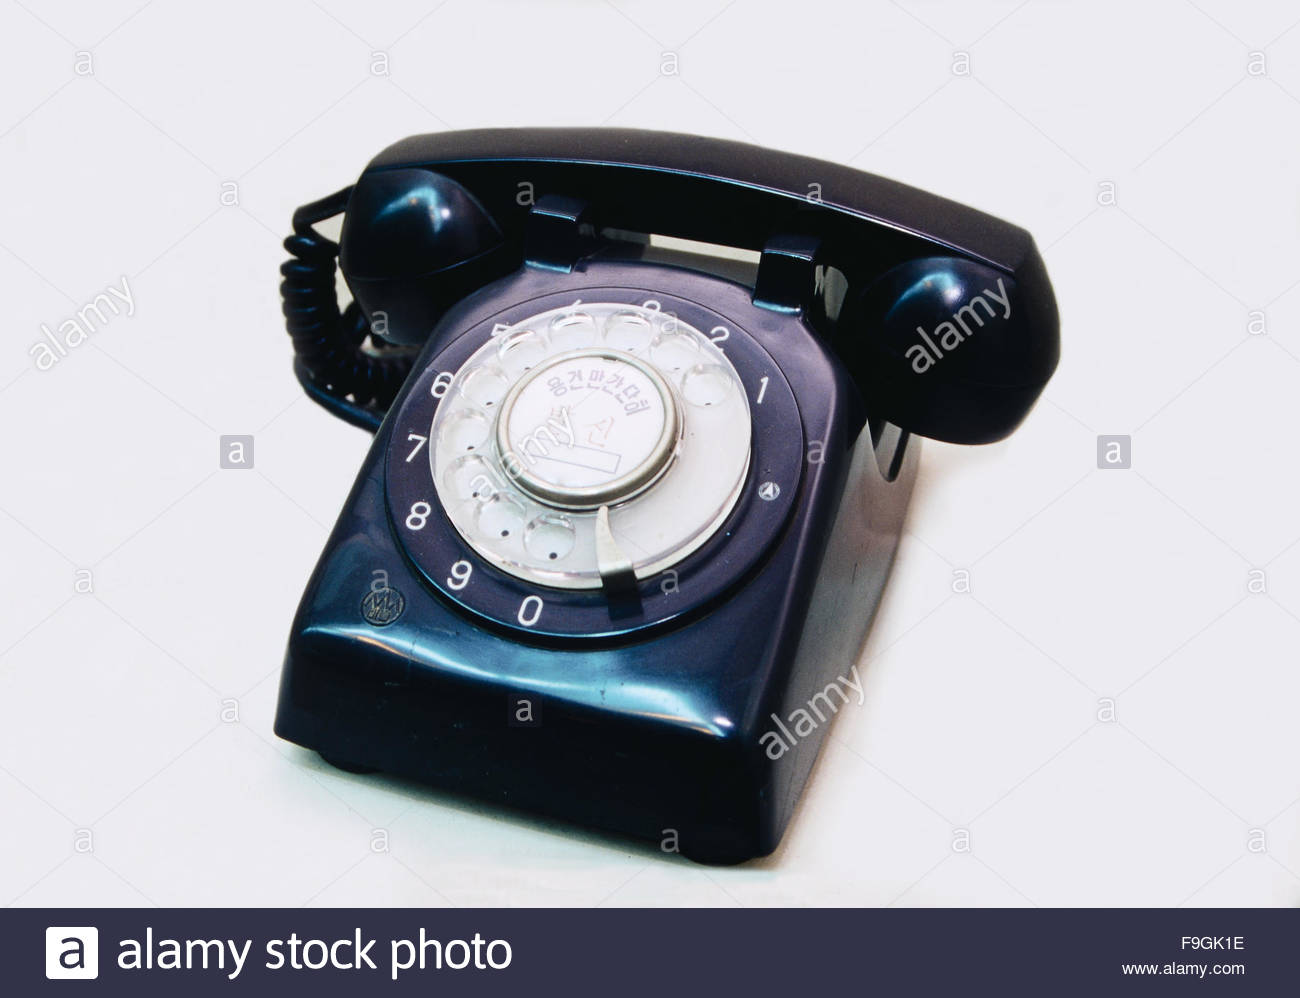 old telephone Stock Photo: 91949914 - Alamy